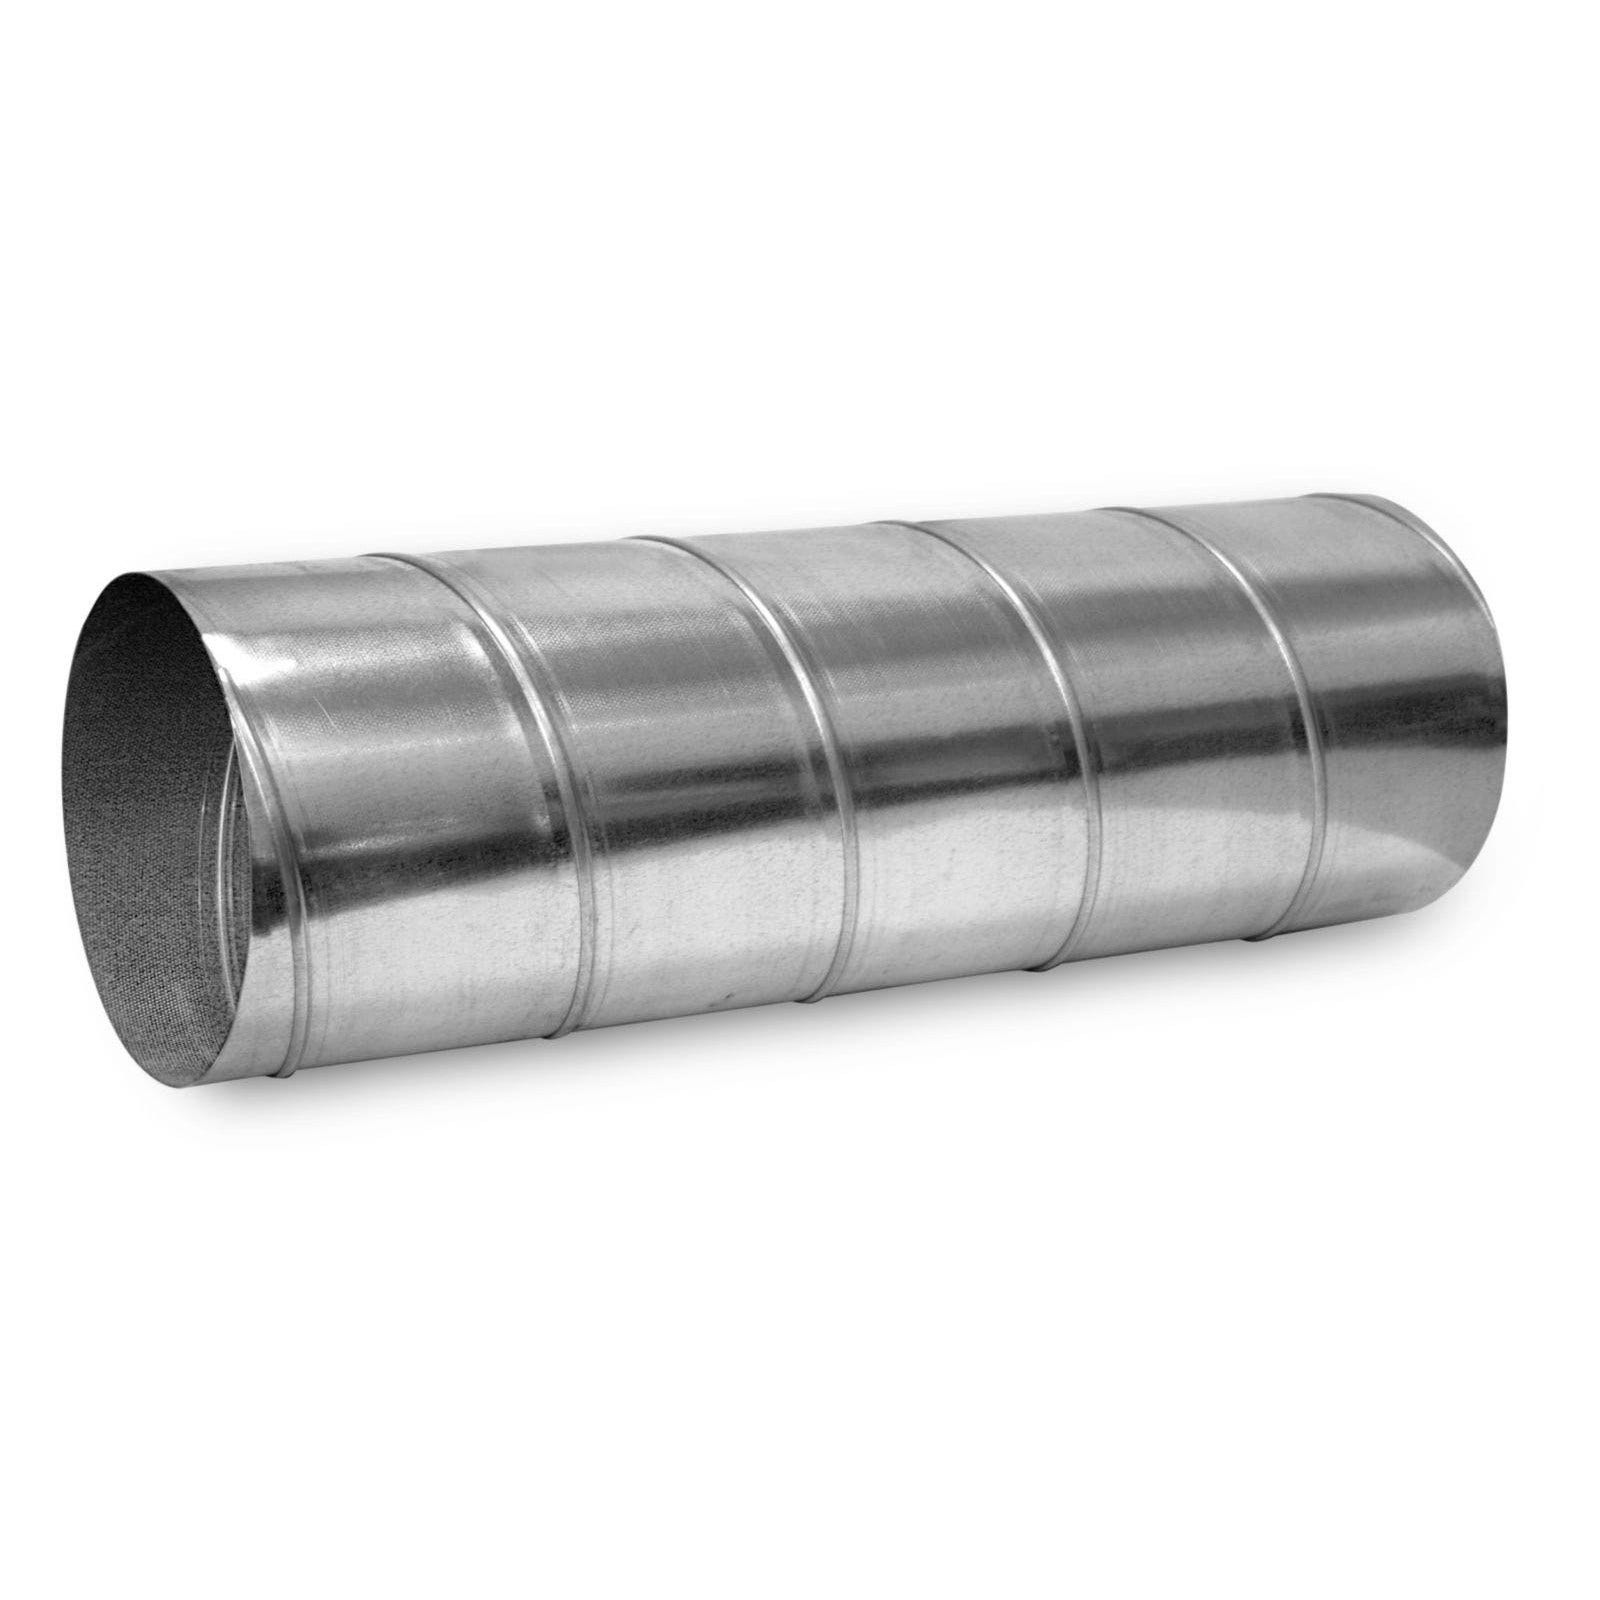 Commercial Ducting